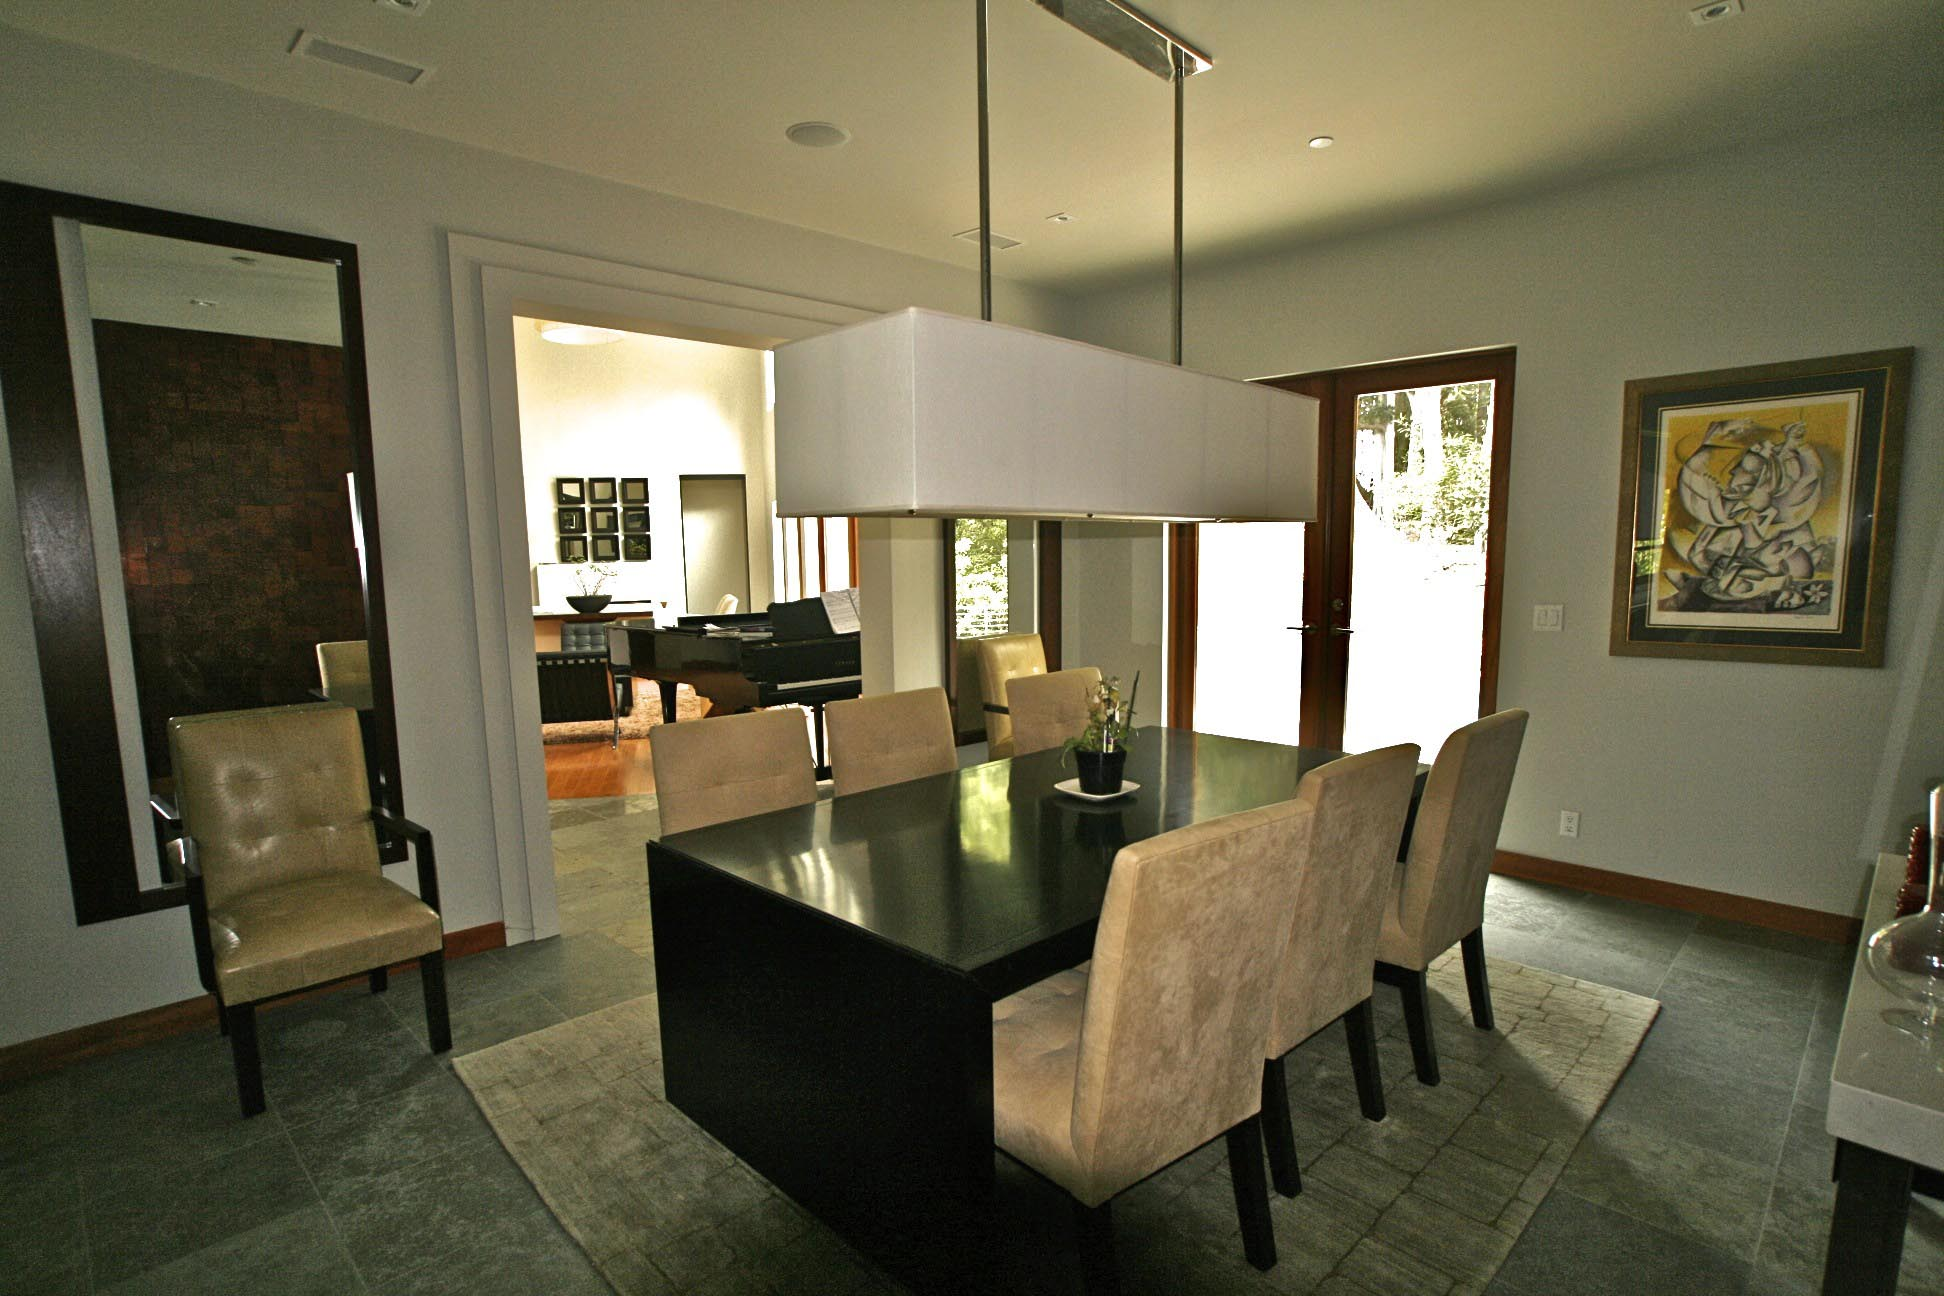 Dining Light Fixtures Make The Dining Room Bright And Warm Light Fixtures D